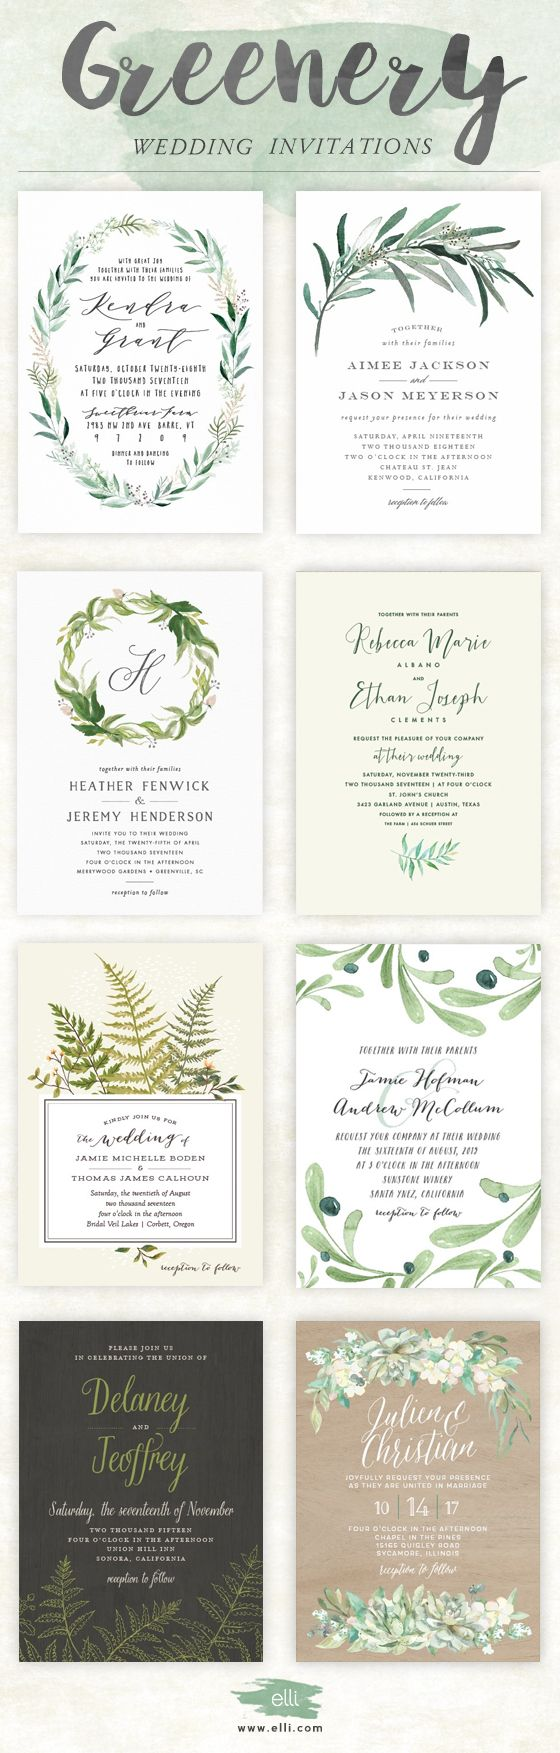 Best 25 Wedding invitations ideas – Printable Wedding Invitation Cards